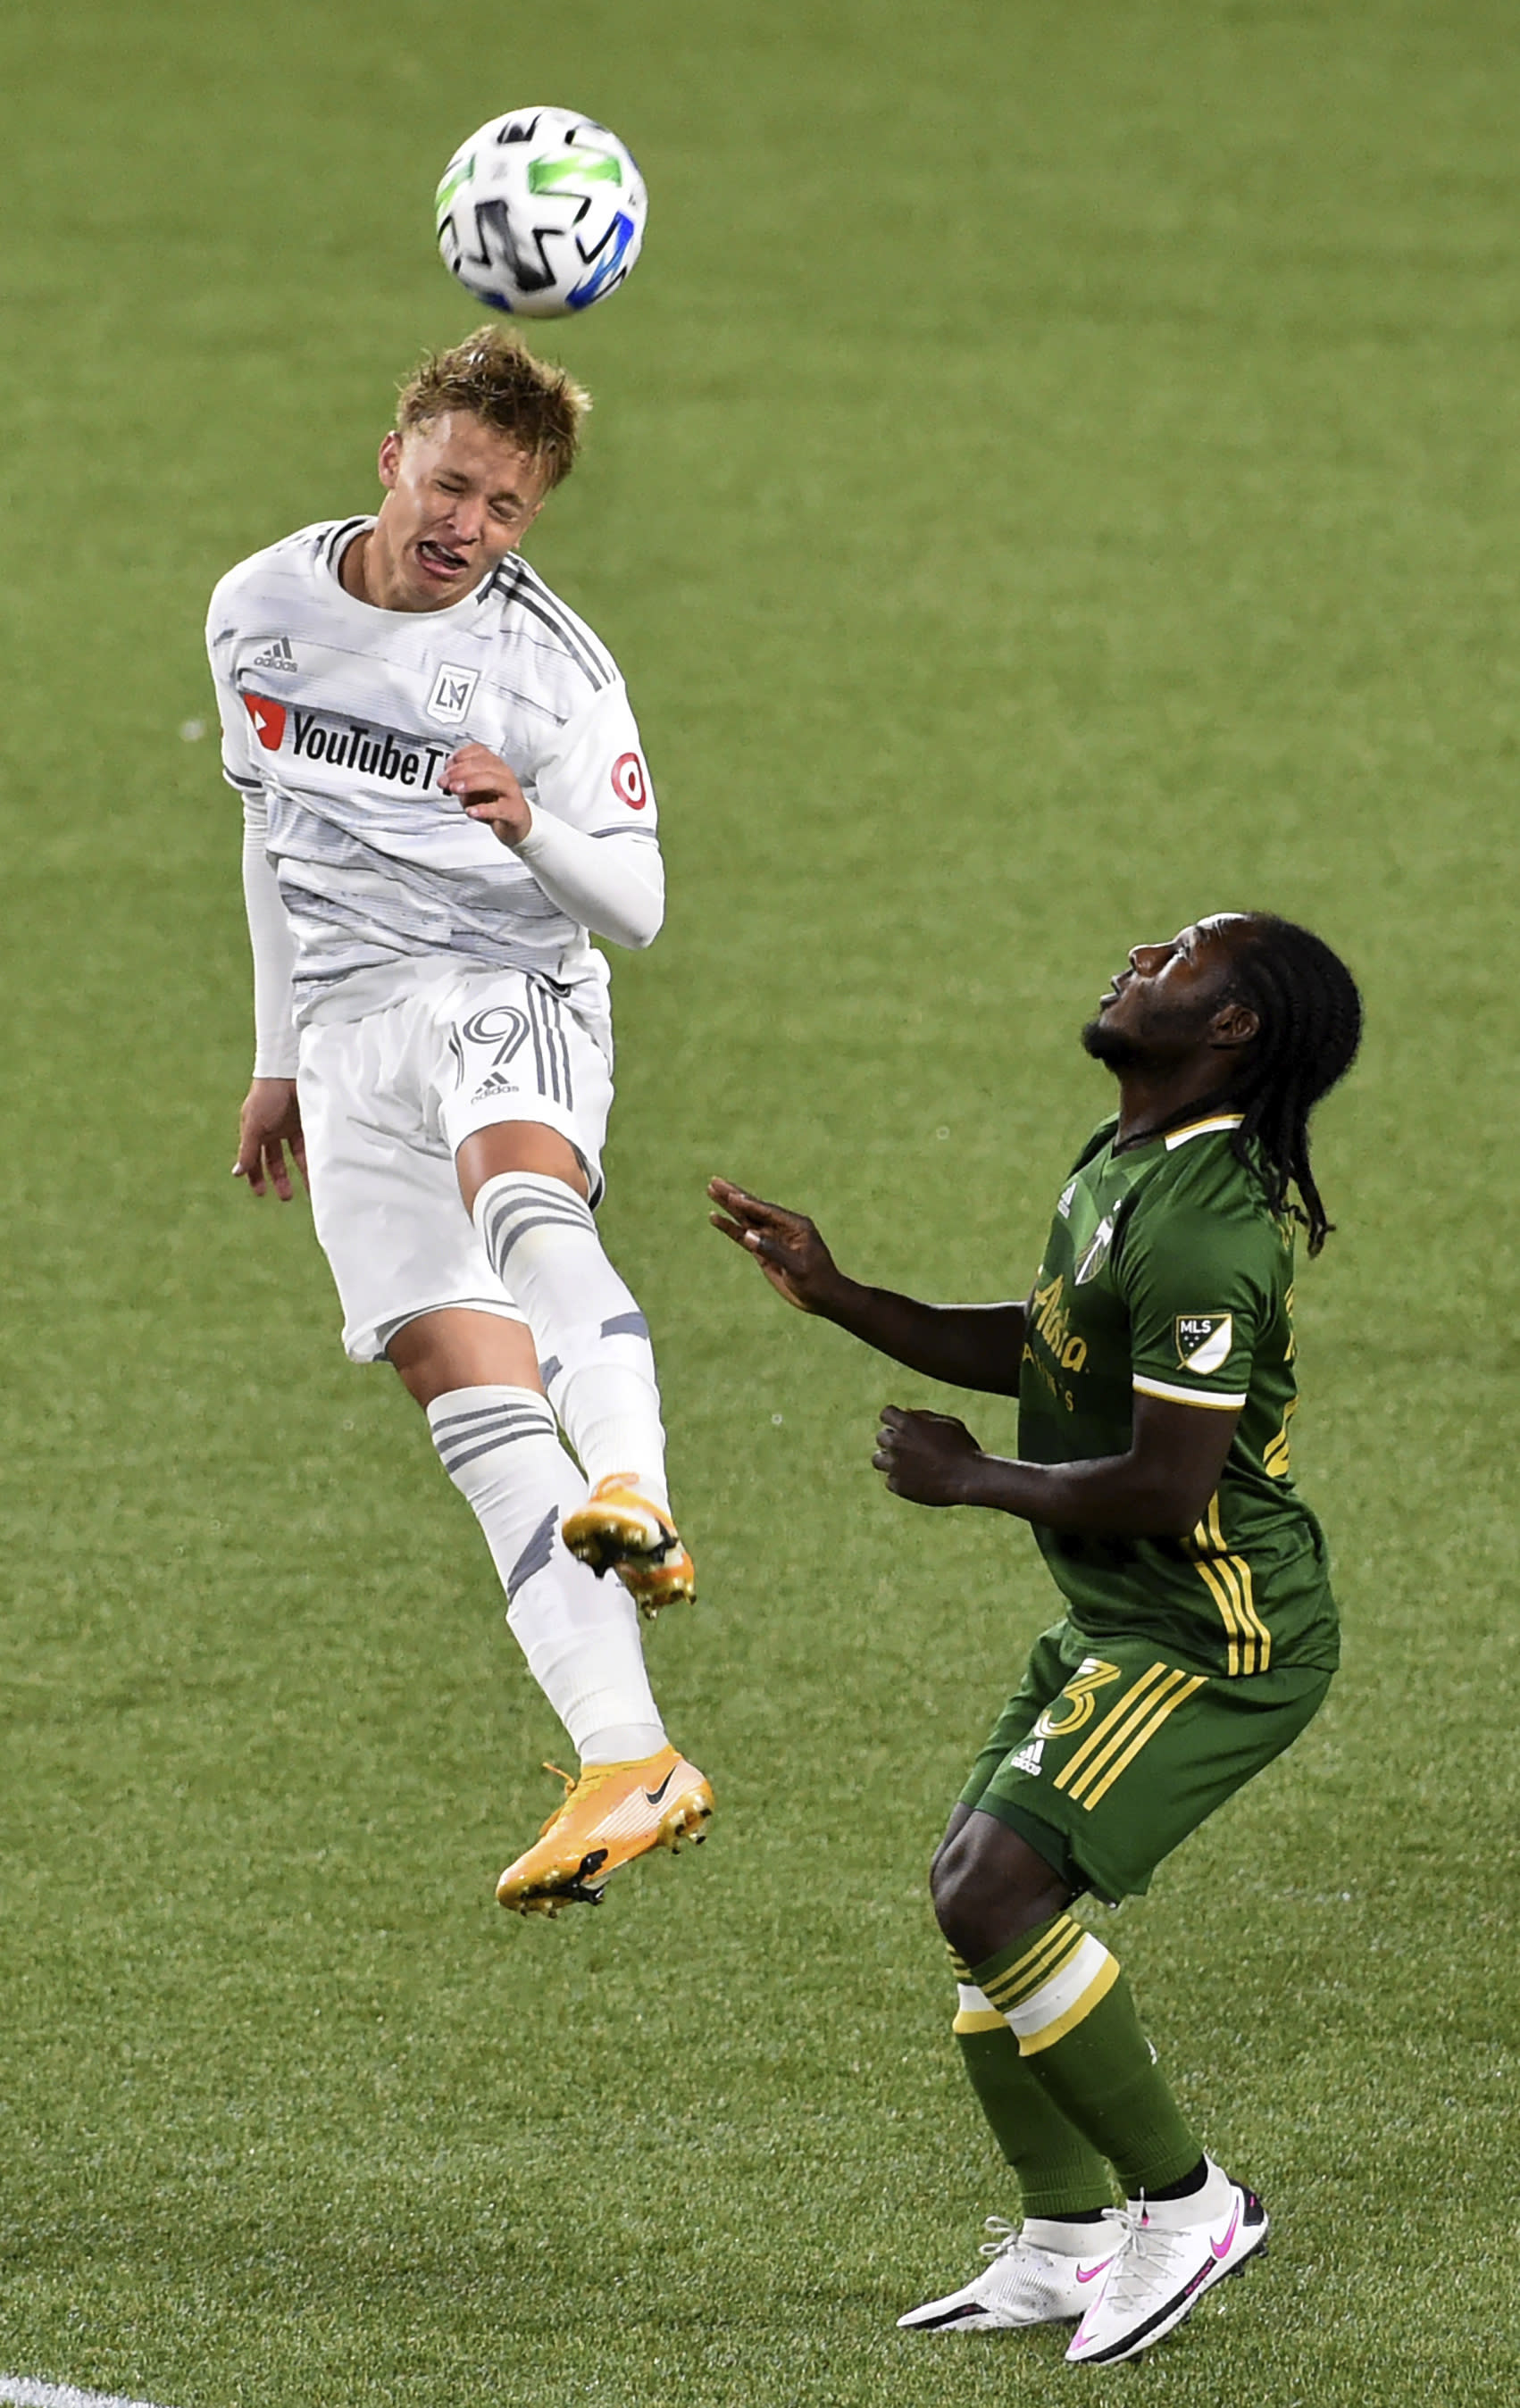 Los Angeles FC midfielder Bryce Duke, left, heads the ball away from Portland Timbers forward Yimmi Chara during the first half of an MLS soccer match in Portland, Ore., Sunday, Oct. 18, 2020. (AP Photo/Steve Dykes)